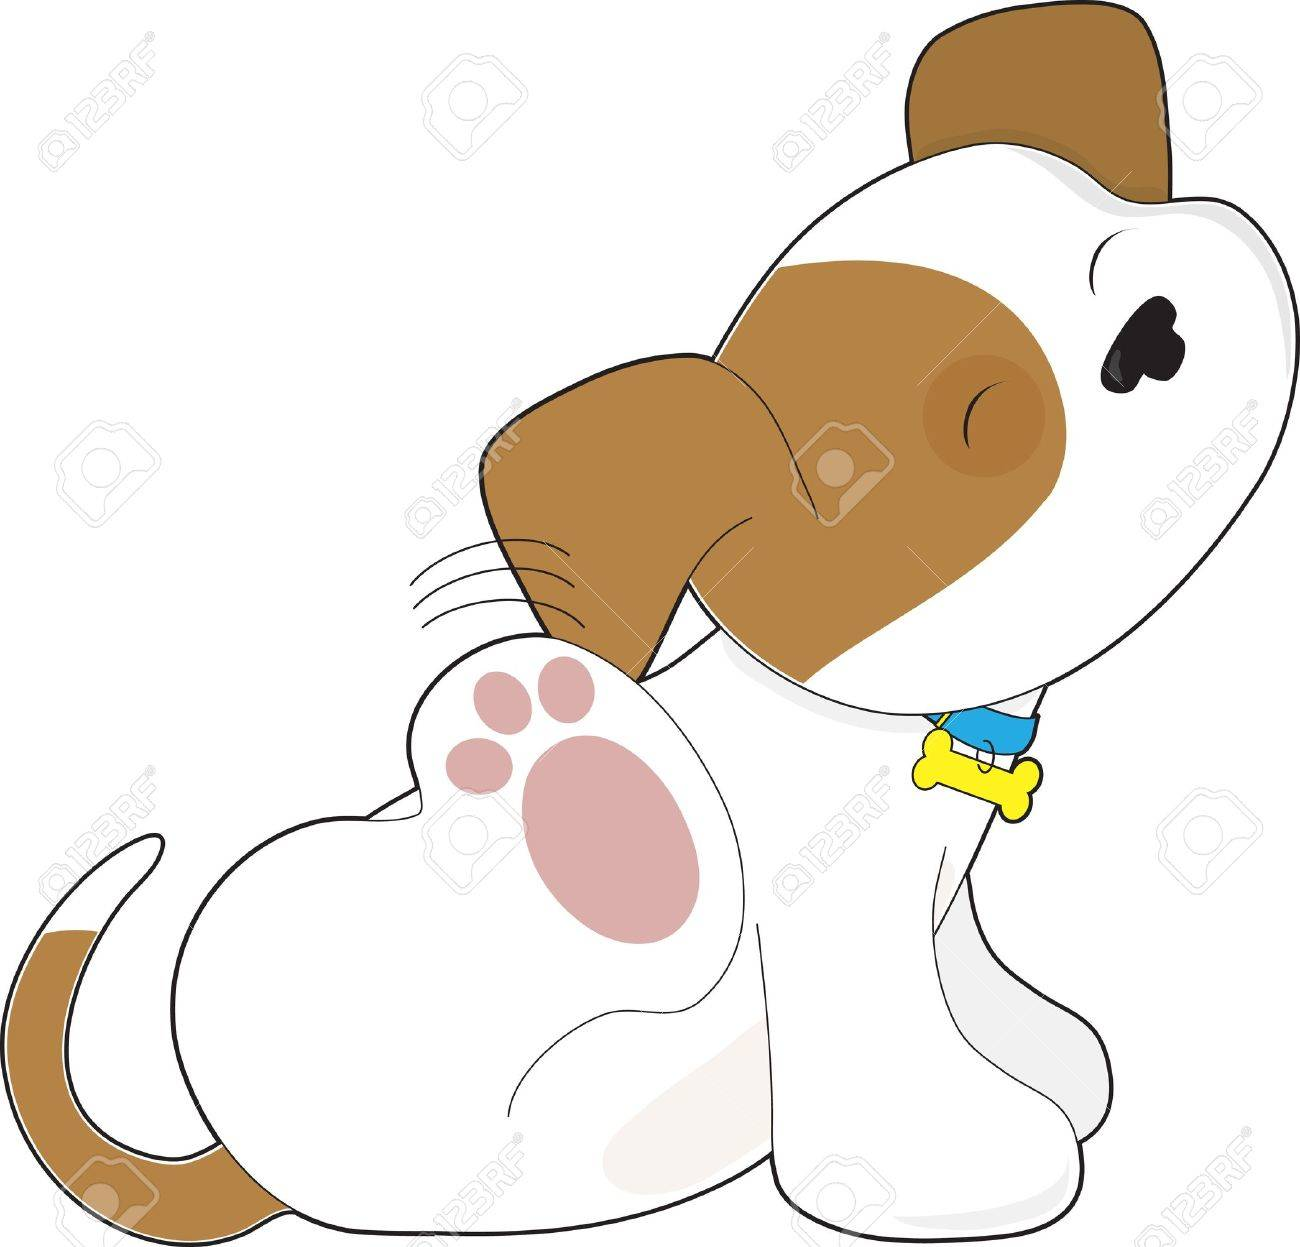 A cute brown and white puppy is scratching its ear. Stock Vector - 10746904